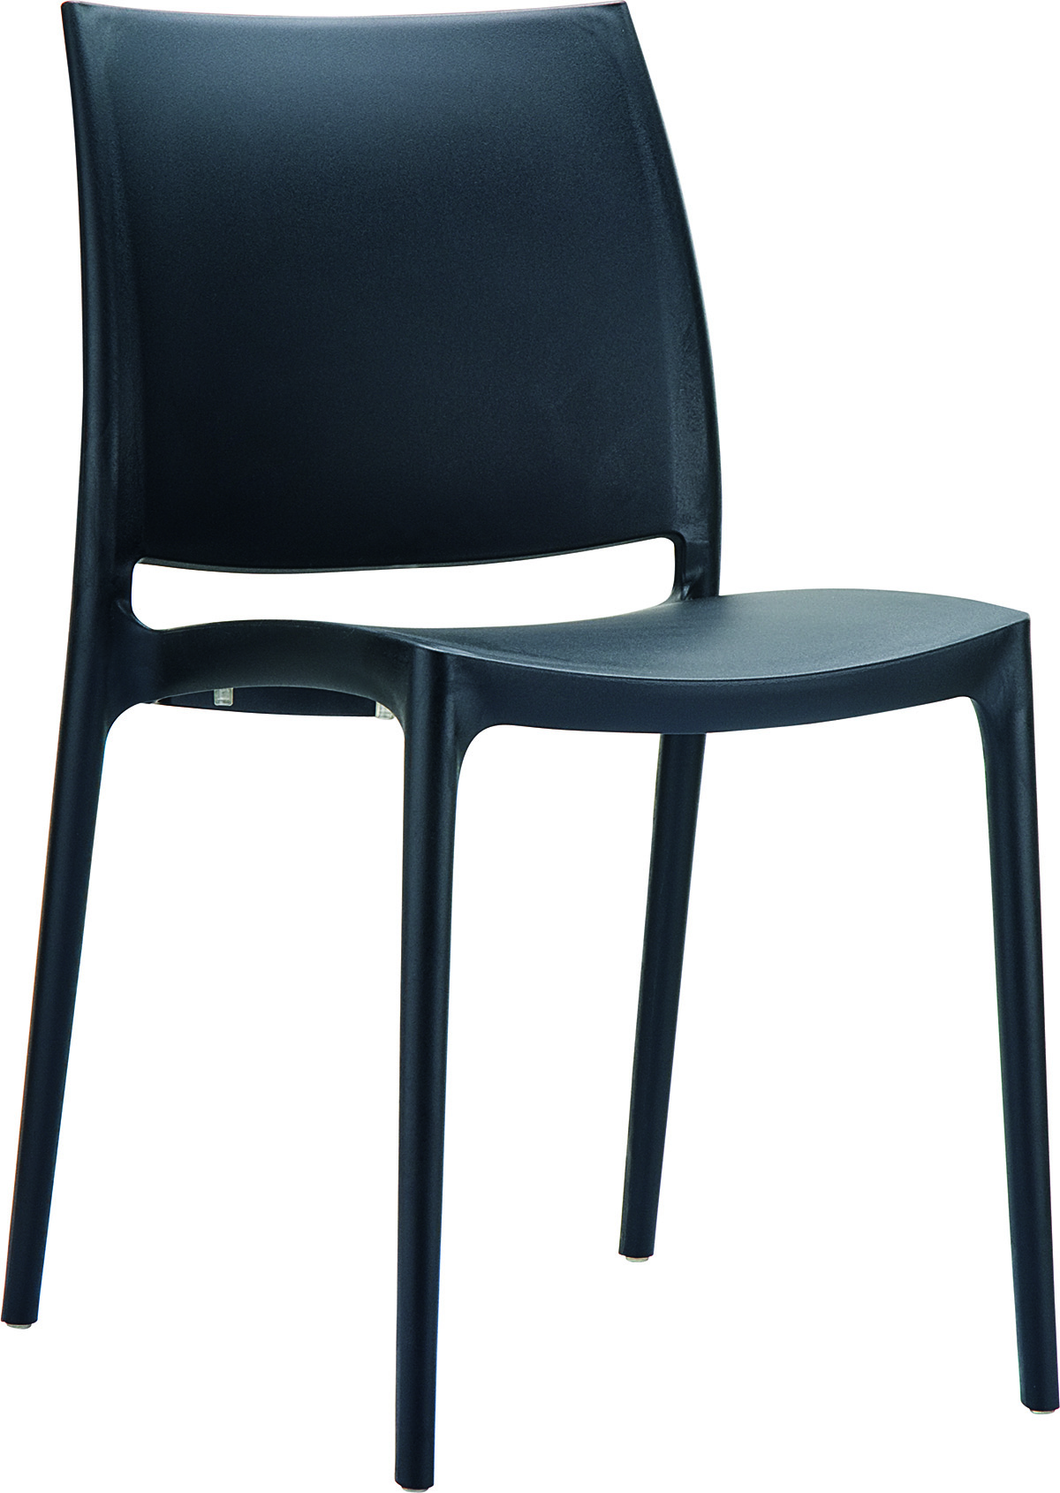 MayMay Chair